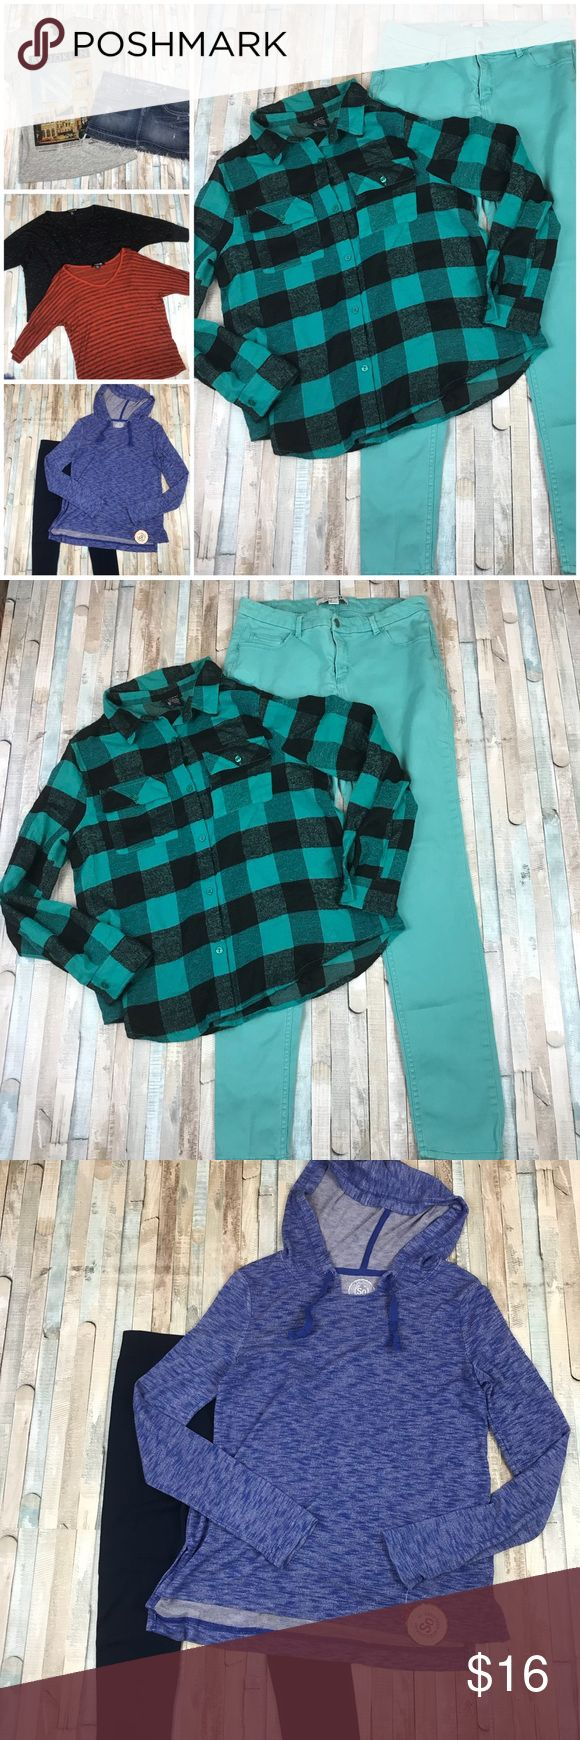 8 Piece Juniors Lot Medium Sz 29 Jeans 8 Piece Juniors Lot. Size 29 and Medium. Rue 21 Buffalo Plaid flannel shirt. Forever 21 Teal skinny jeans, Guess jean mini skirt, H & M Brooklyn Tee, 2 Forever 21 dolman Sleeve boxy shirts, navy leggings, New with tags So blue hooded top from Kohl's. All but 1 in pre-owned condition. Please do not bundle with this lot because it reaches the max you pay for with the shipping rate. Feel free to ask questions! Forever 21 Jeans Skinny